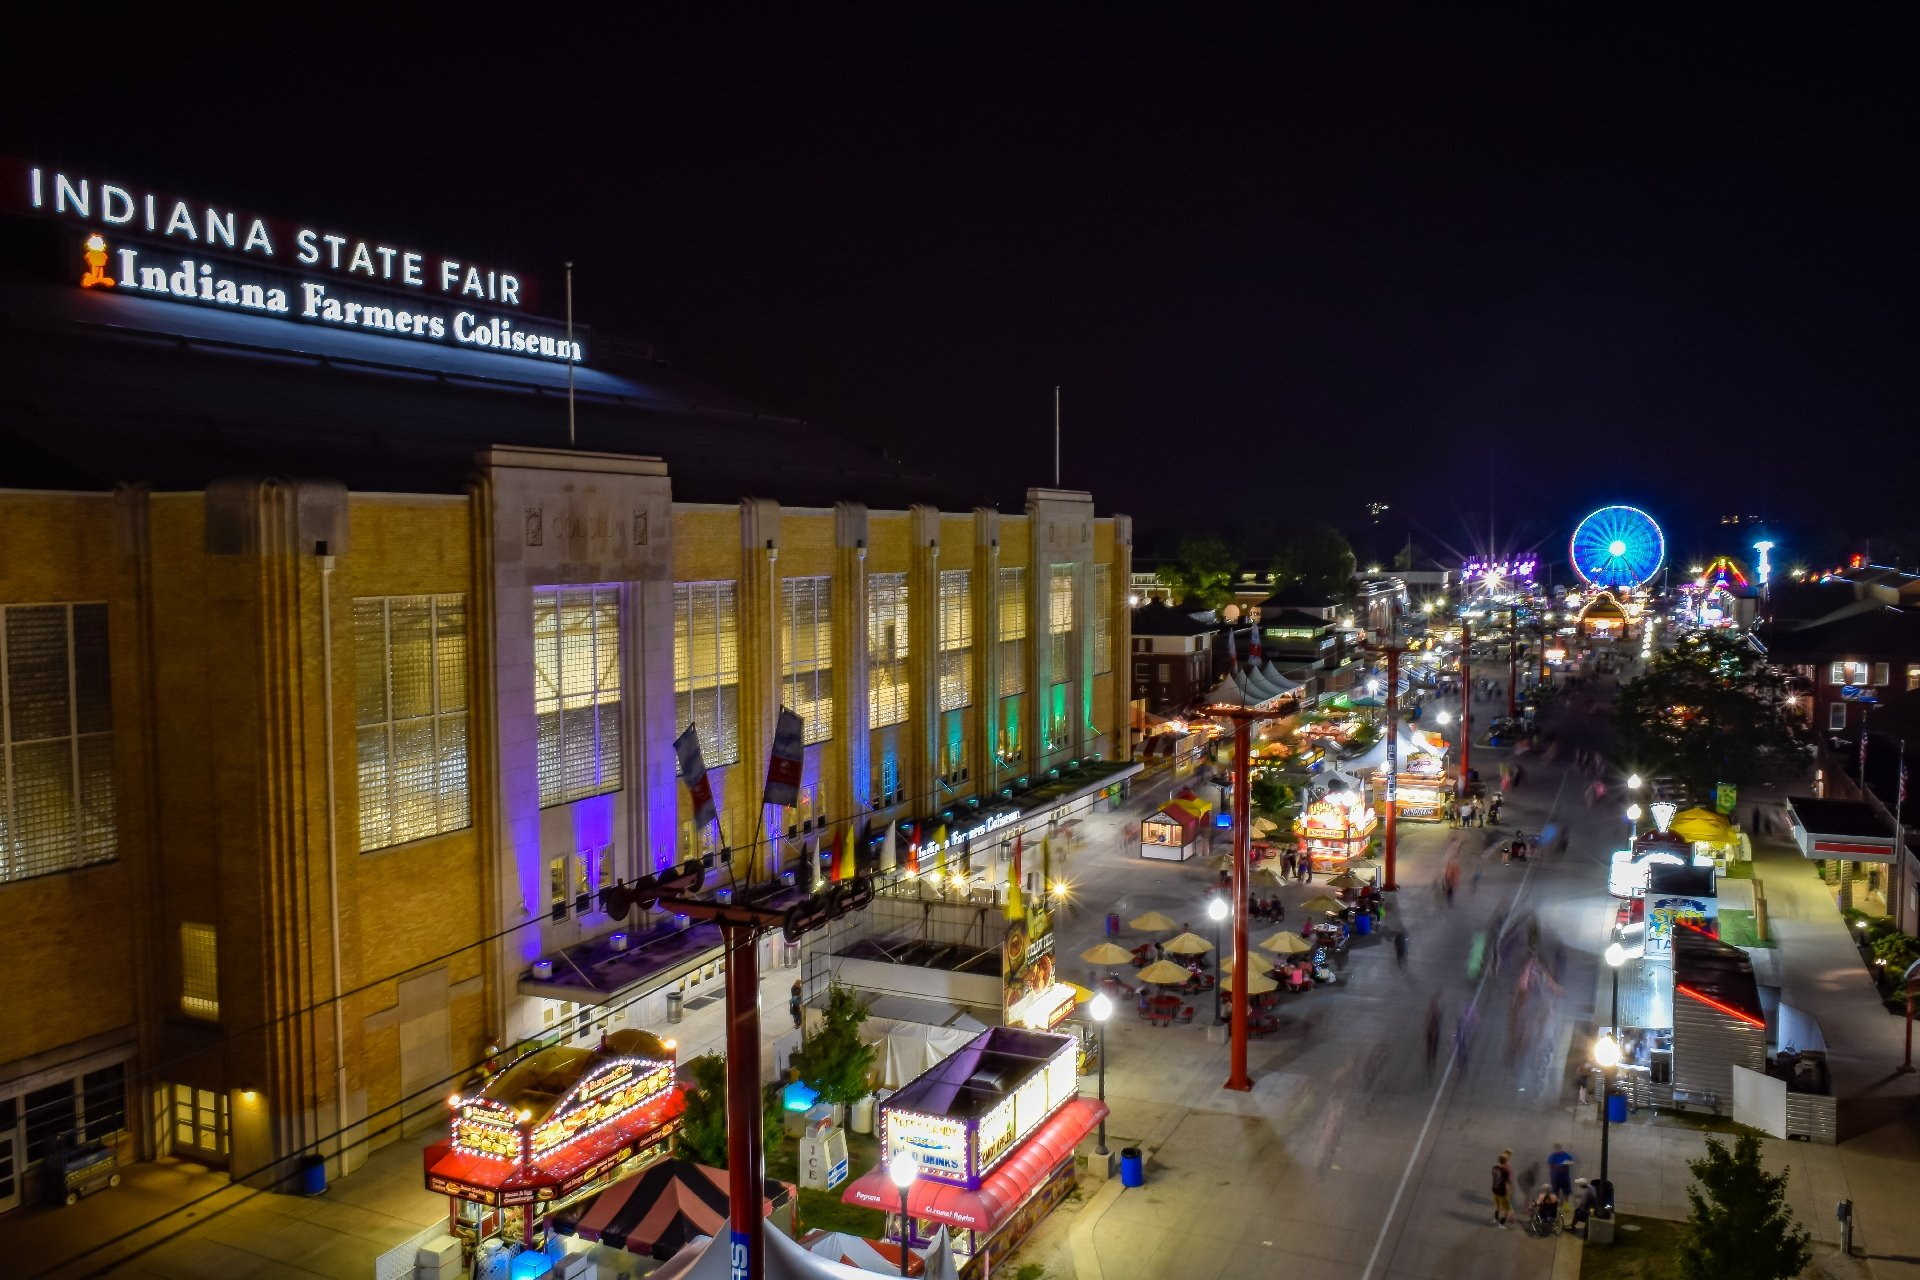 Indiana State Fair Commission